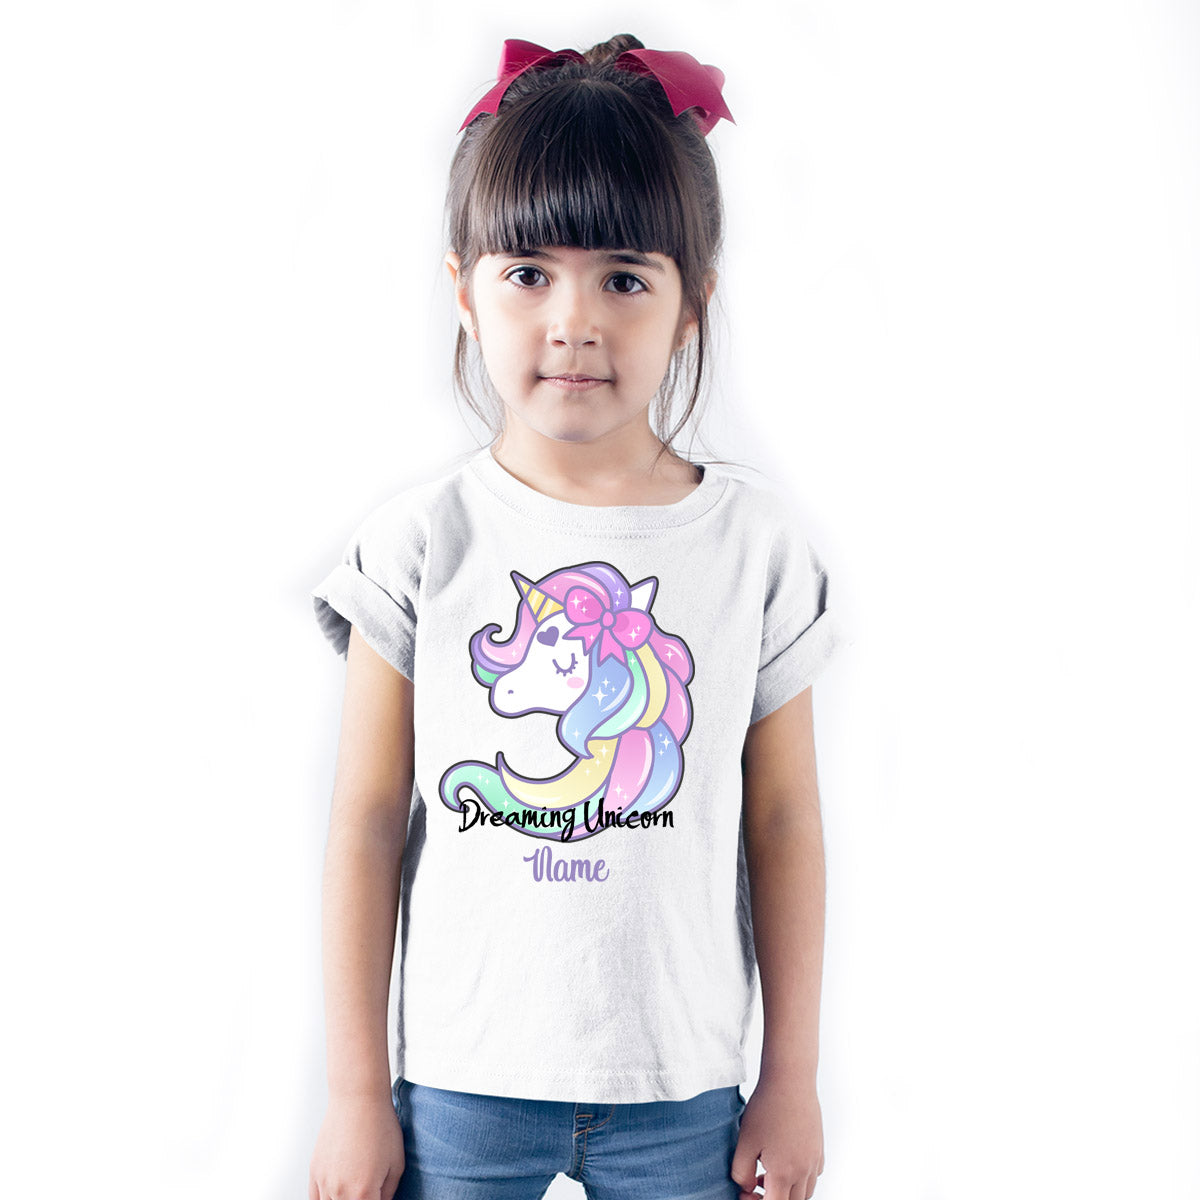 Sprinklecart Customized Name Printed Dreaming Unicorn Kids Poly-Cotton T Shirt (White)